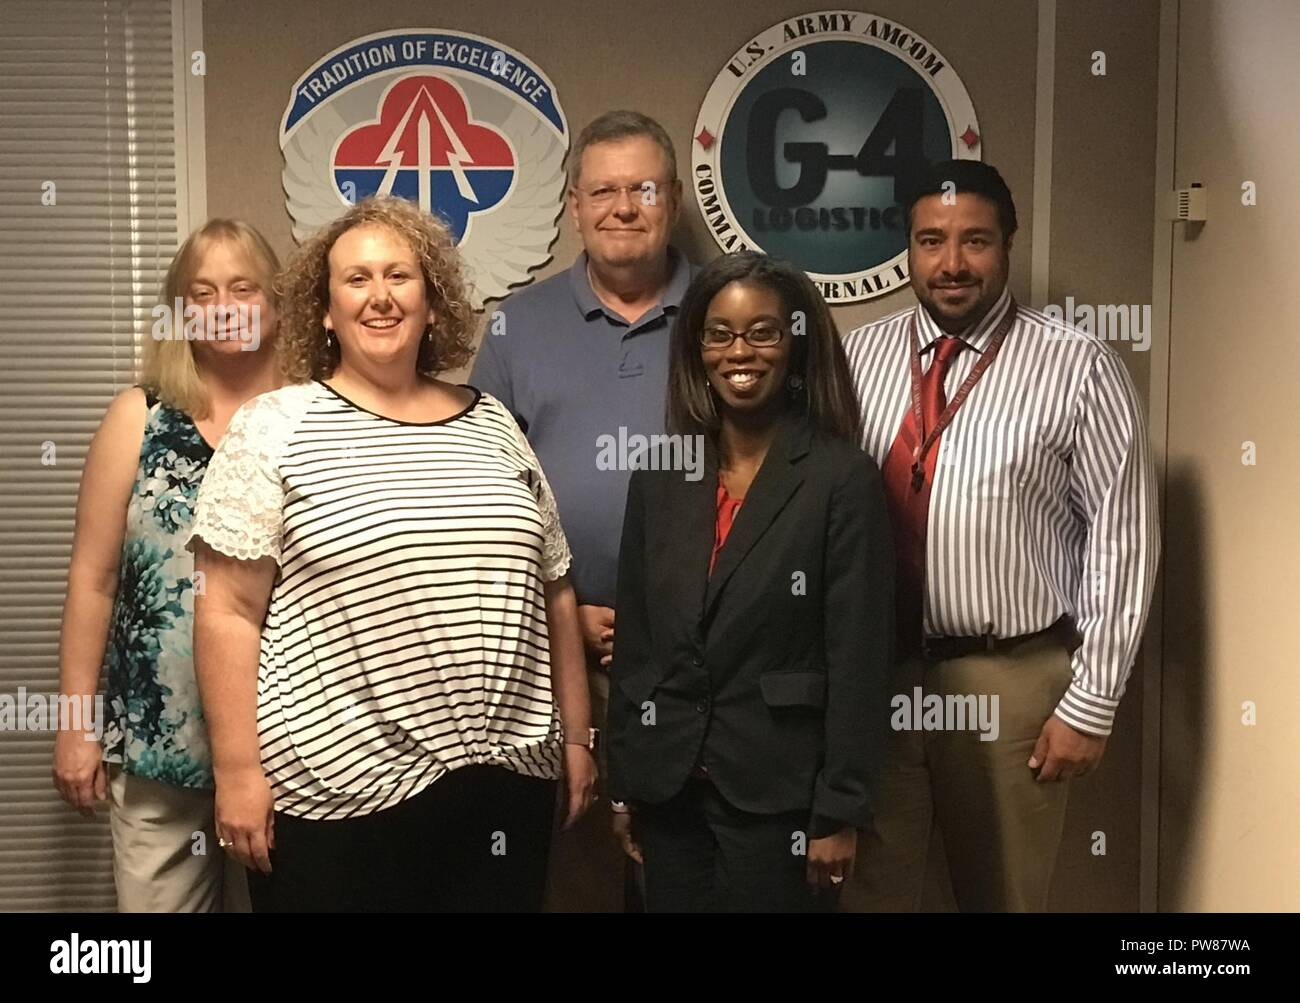 The Aviation and Missile Command's G-4 Environmental Hot Line Team is responsible for reviewing UH-72 Lakota consumables materials for compliance with new air regulations and for providing recommended substitutions when necessary. The team includes, from left, Leslie Hasenbein, Sheree York, team lead Mark Feathers, LaDonna McCann and Zubin Dutia. Not pictured is Paul Robinson. - Stock Image